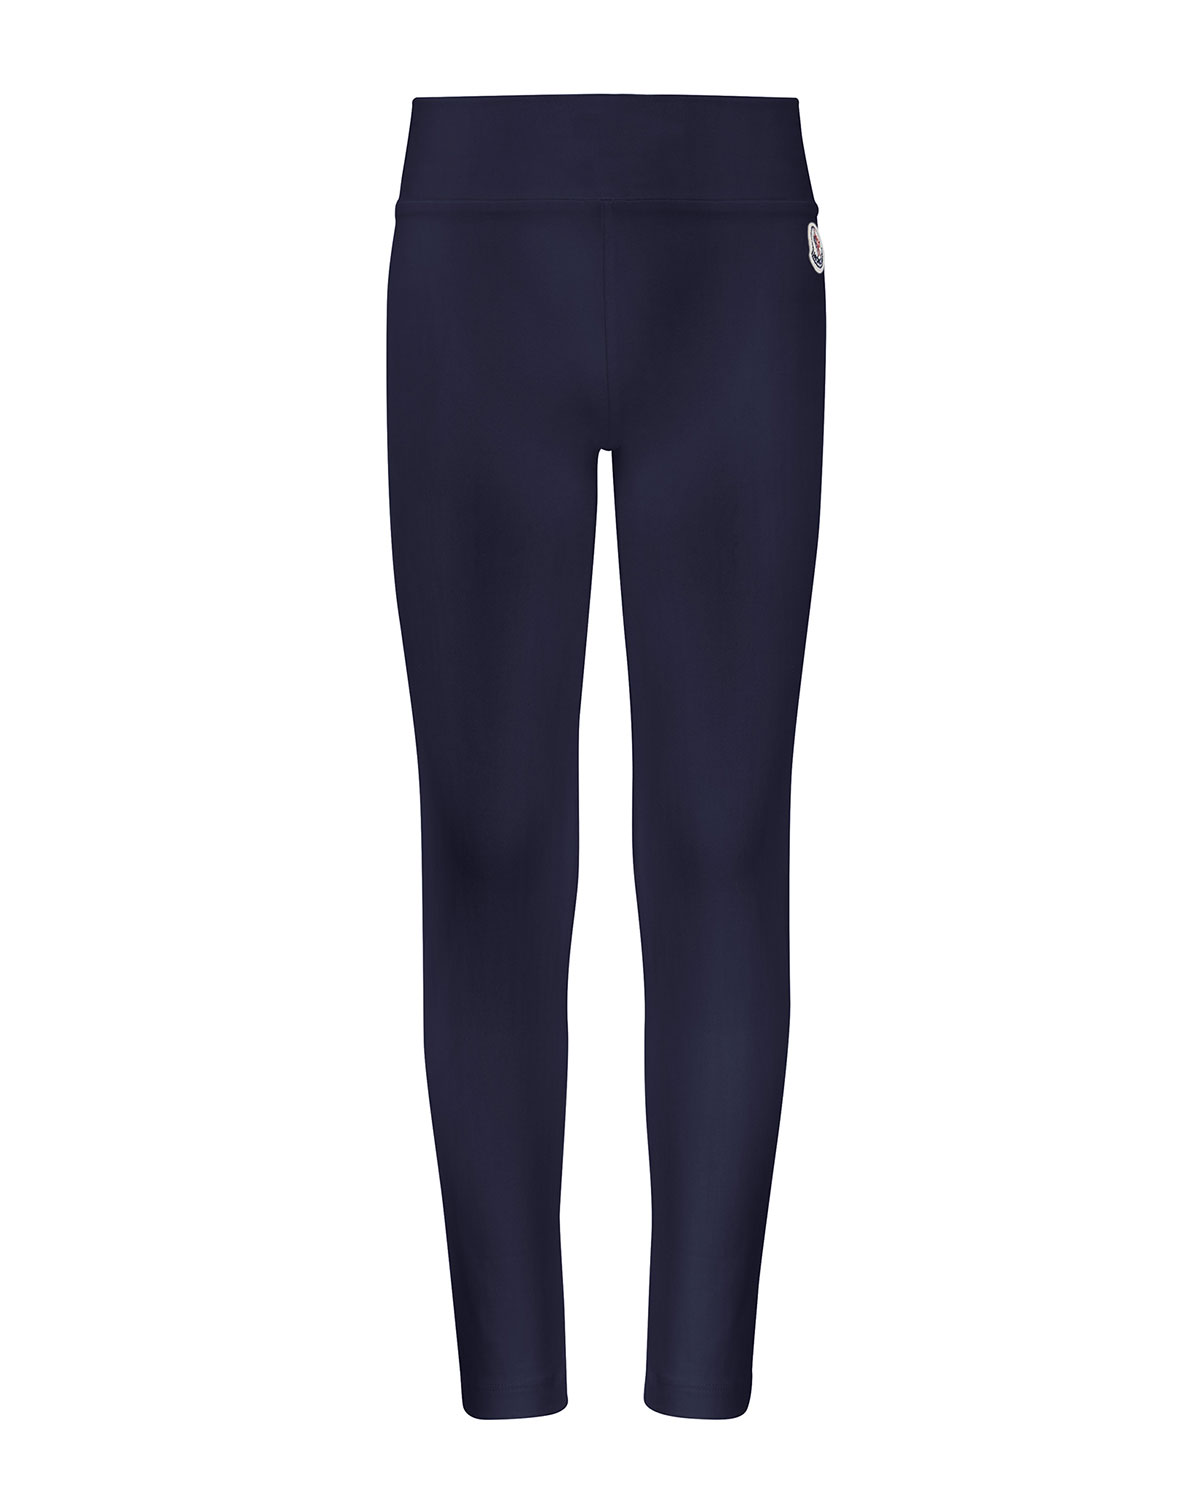 1b27bab88a7ac Moncler Stretch Leggings, Size 8-14 | Neiman Marcus